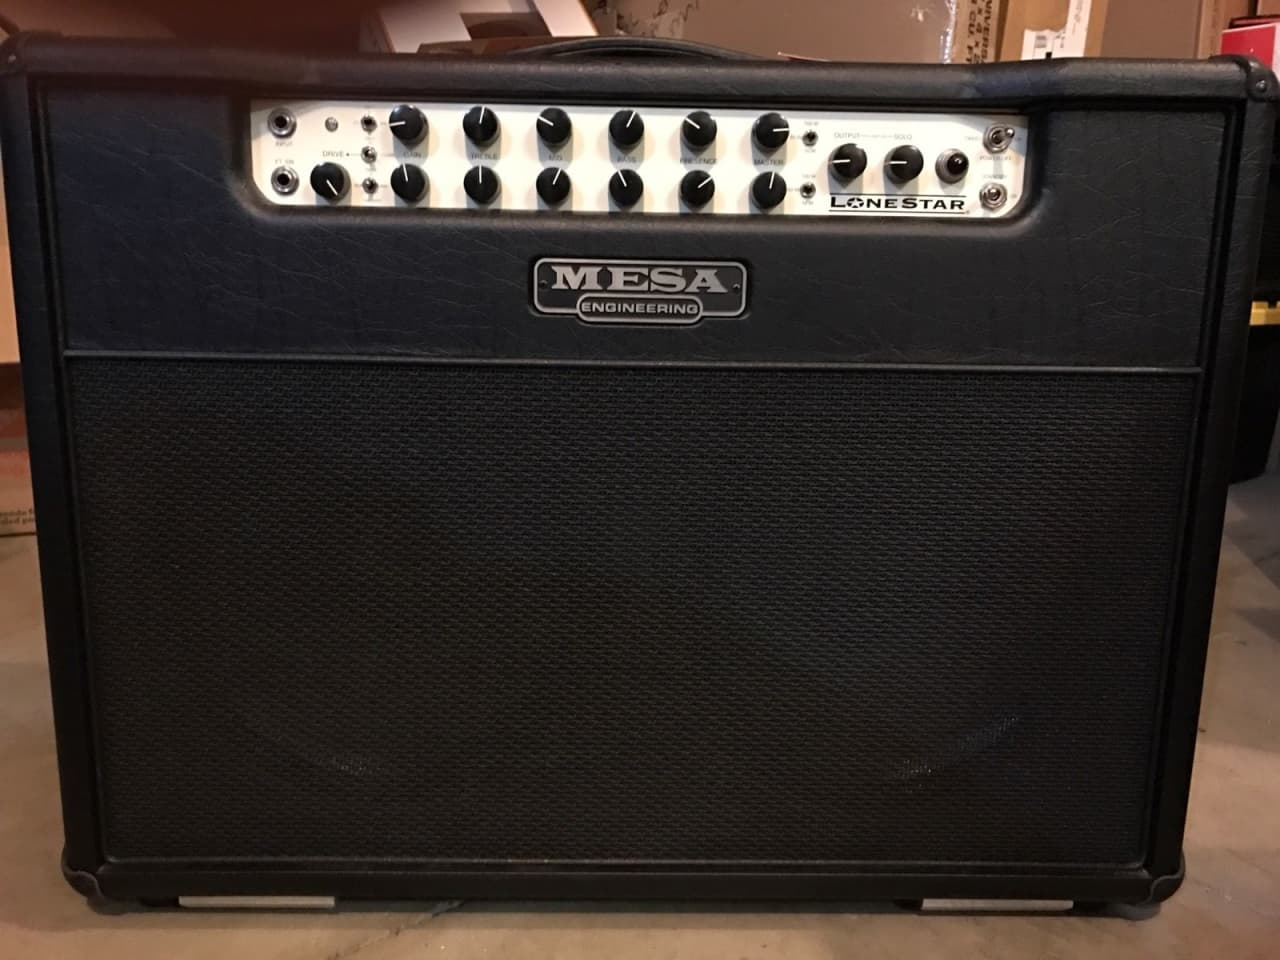 Mesa boogie lone star 2x12 100w excellent condition for Mesa boogie lonestar 2x12